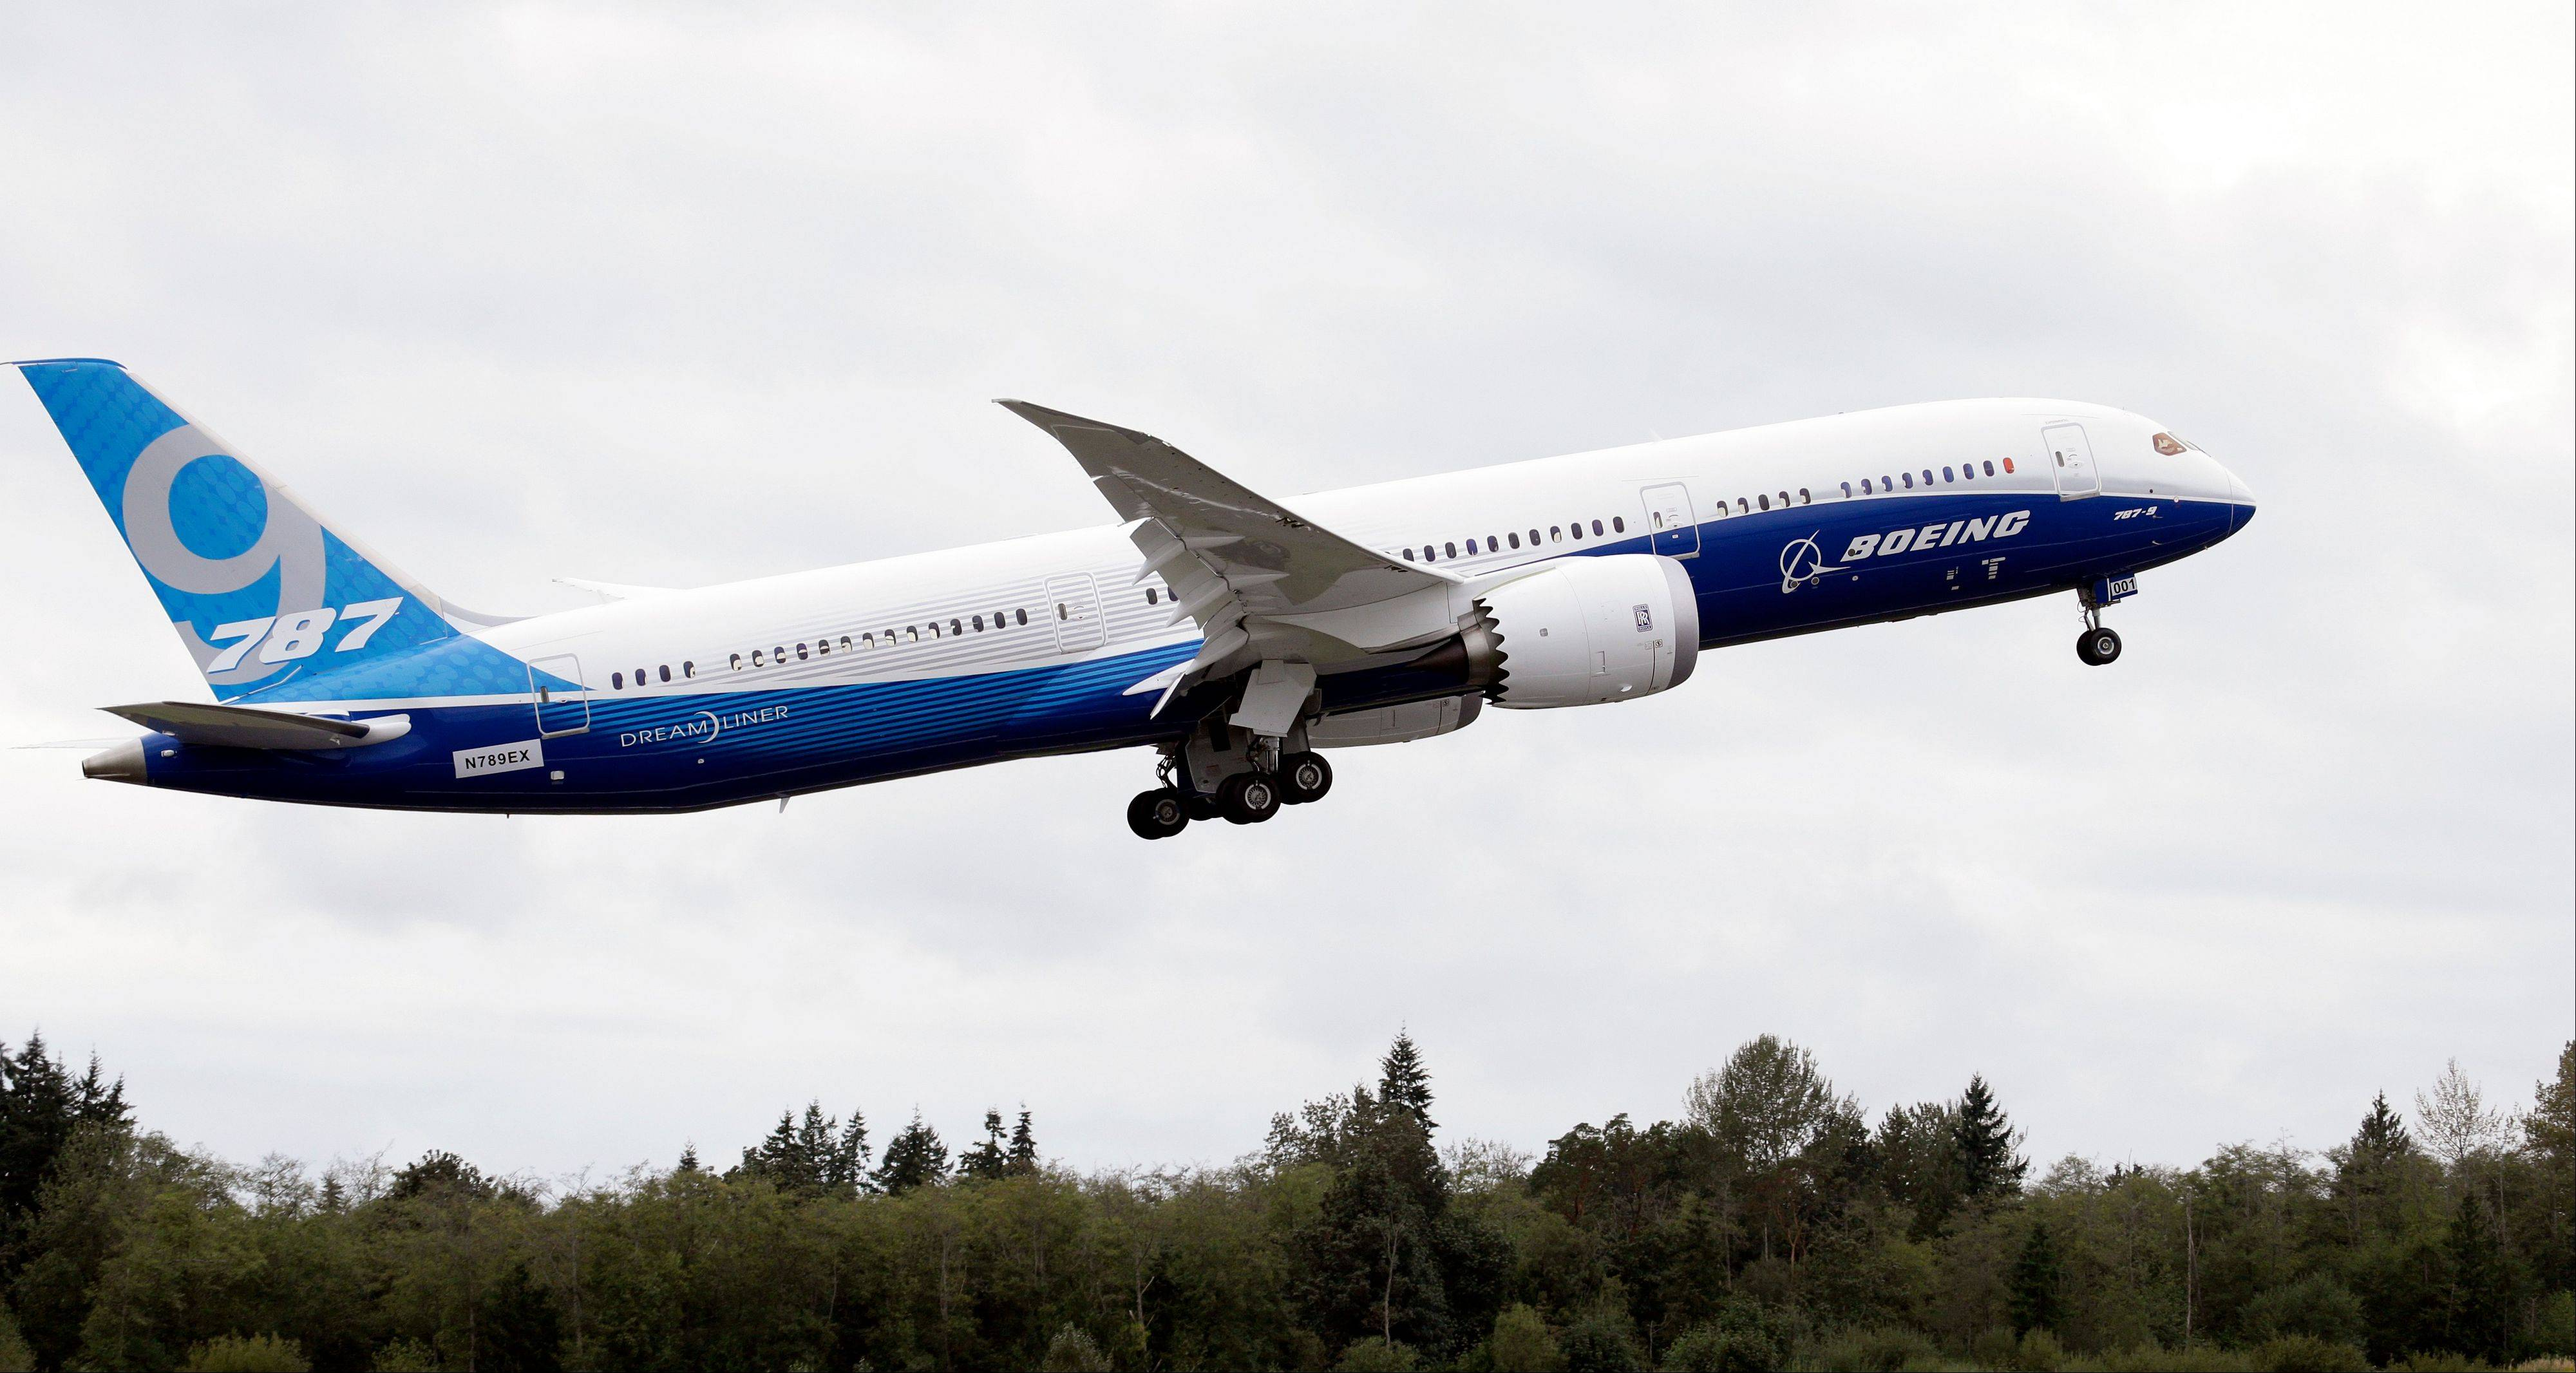 ASSOCIATED PRESSBattery problems resurfaced on Boeing's 787, like the plane shown here, on Tuesday, after gas was discovered coming out of a battery on a plane parked in Tokyo.